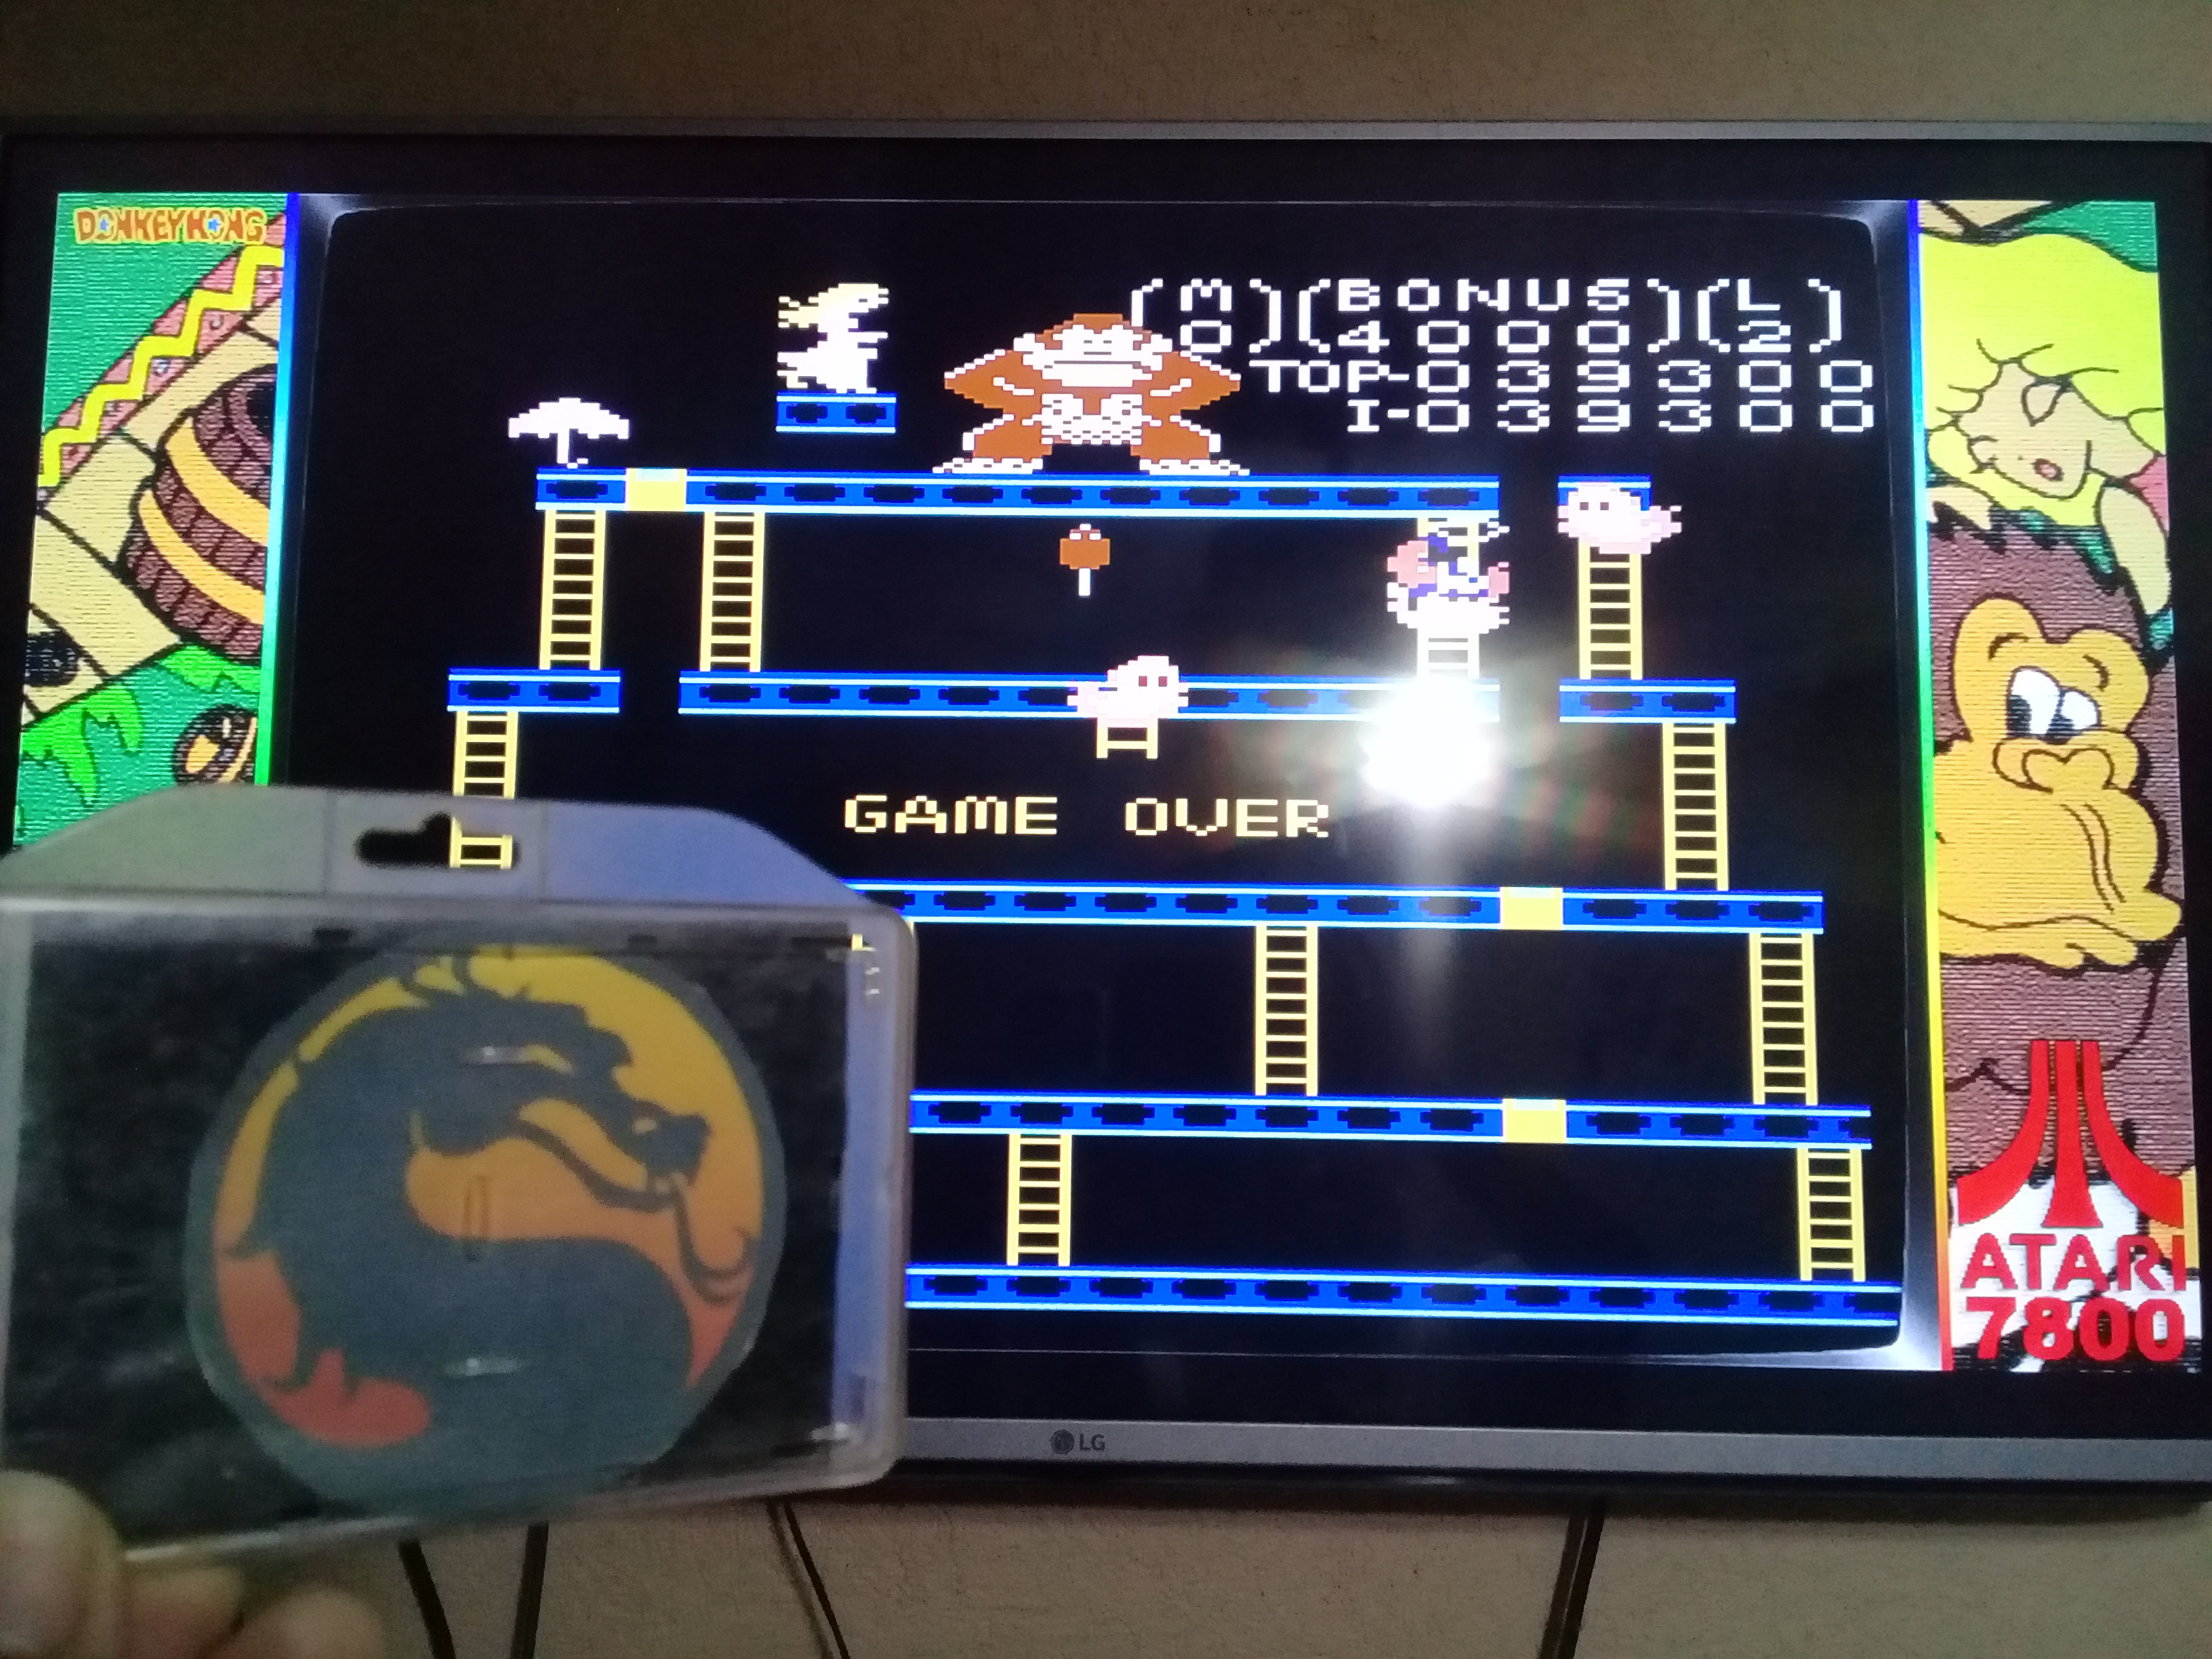 omargeddon: Donkey Kong: Standard (Atari 7800 Emulated) 39,300 points on 2020-06-20 19:45:26